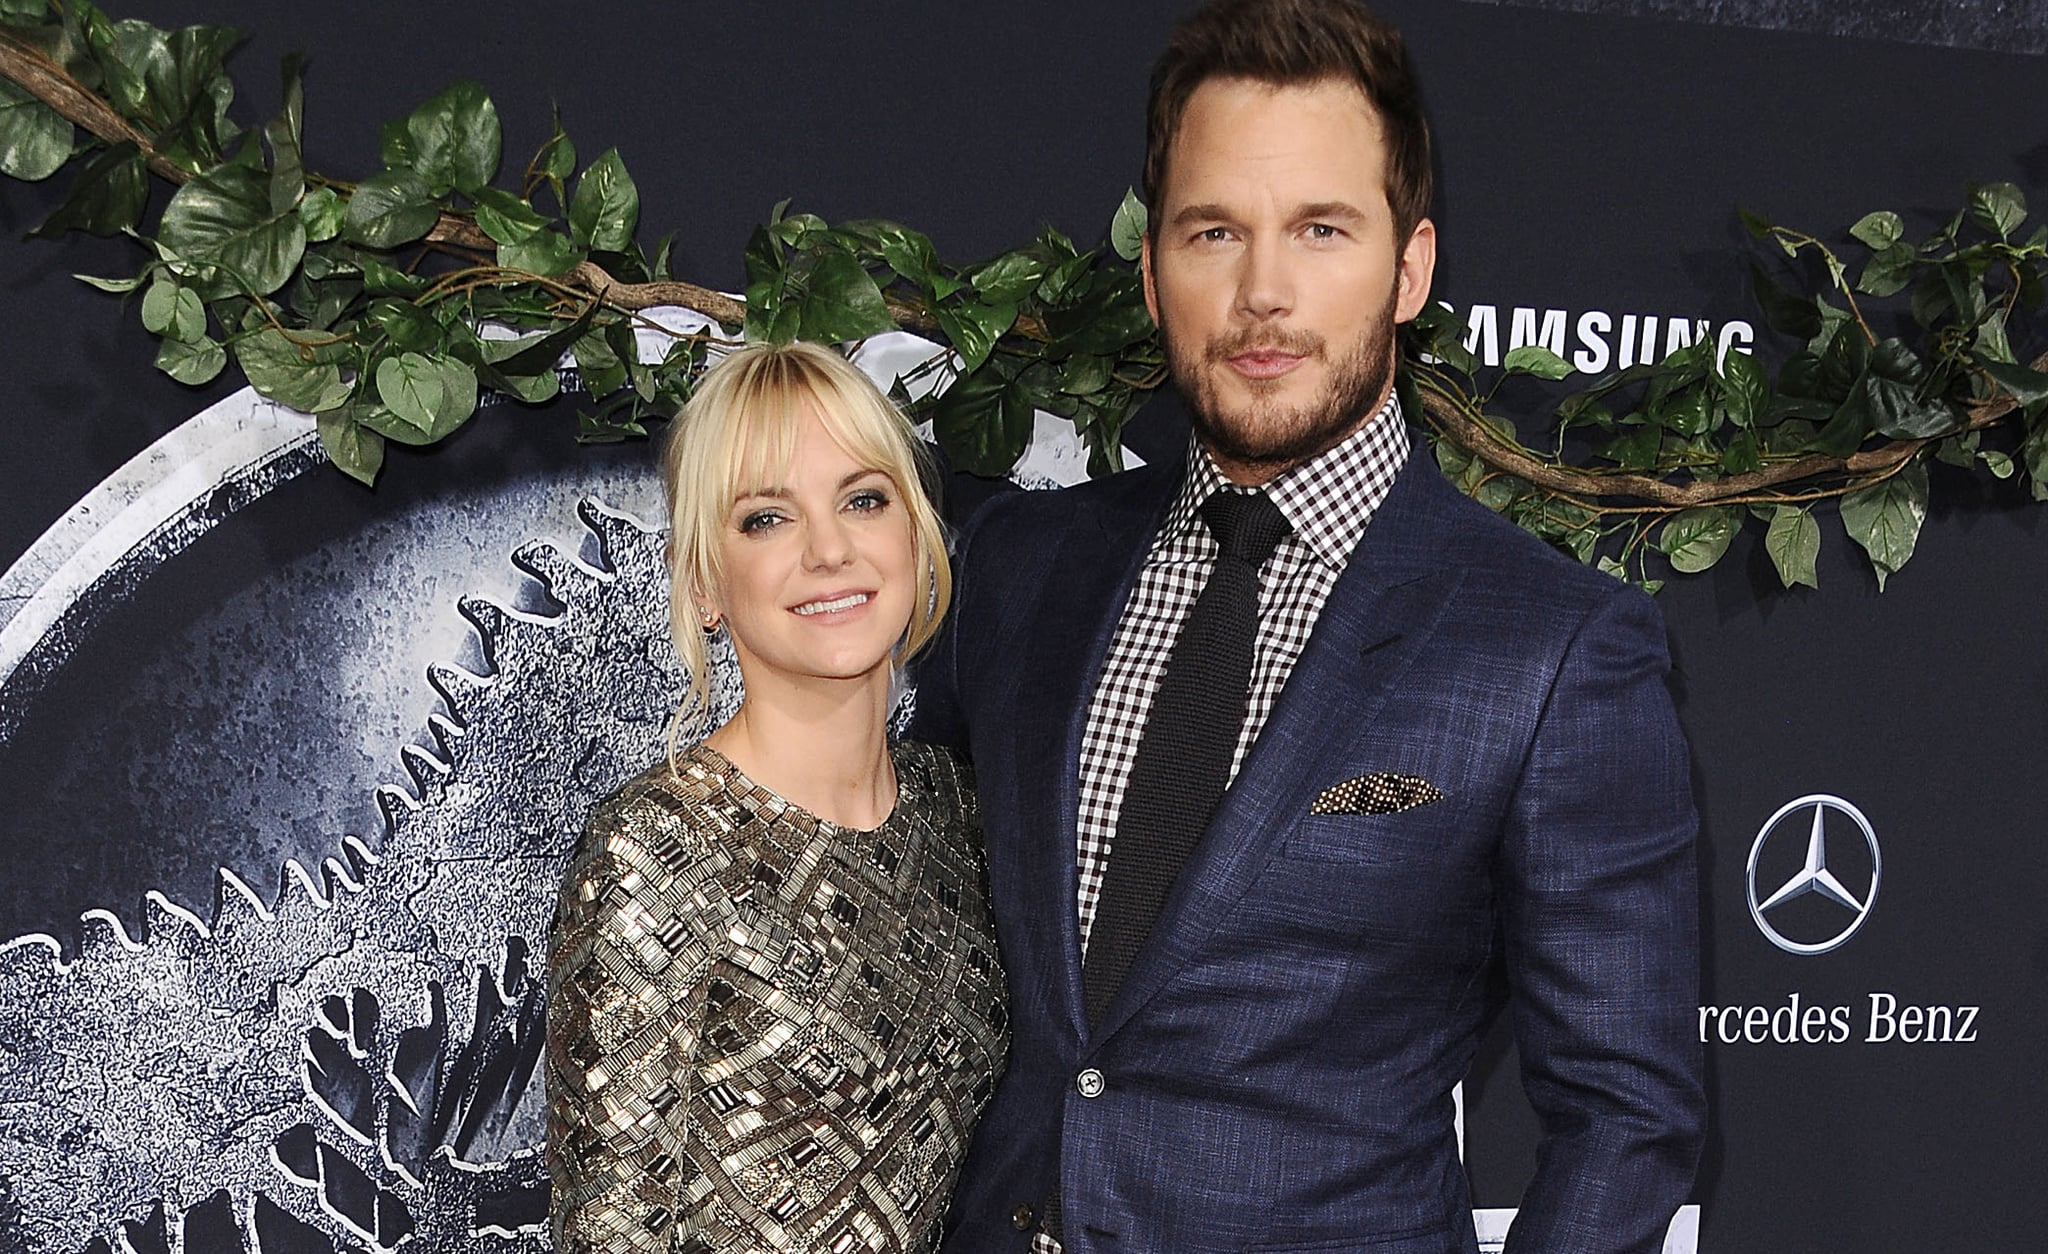 Anna faris and chris pratt quotes about their breakup popsugar share this link copy chris pratt and anna faris junglespirit Image collections